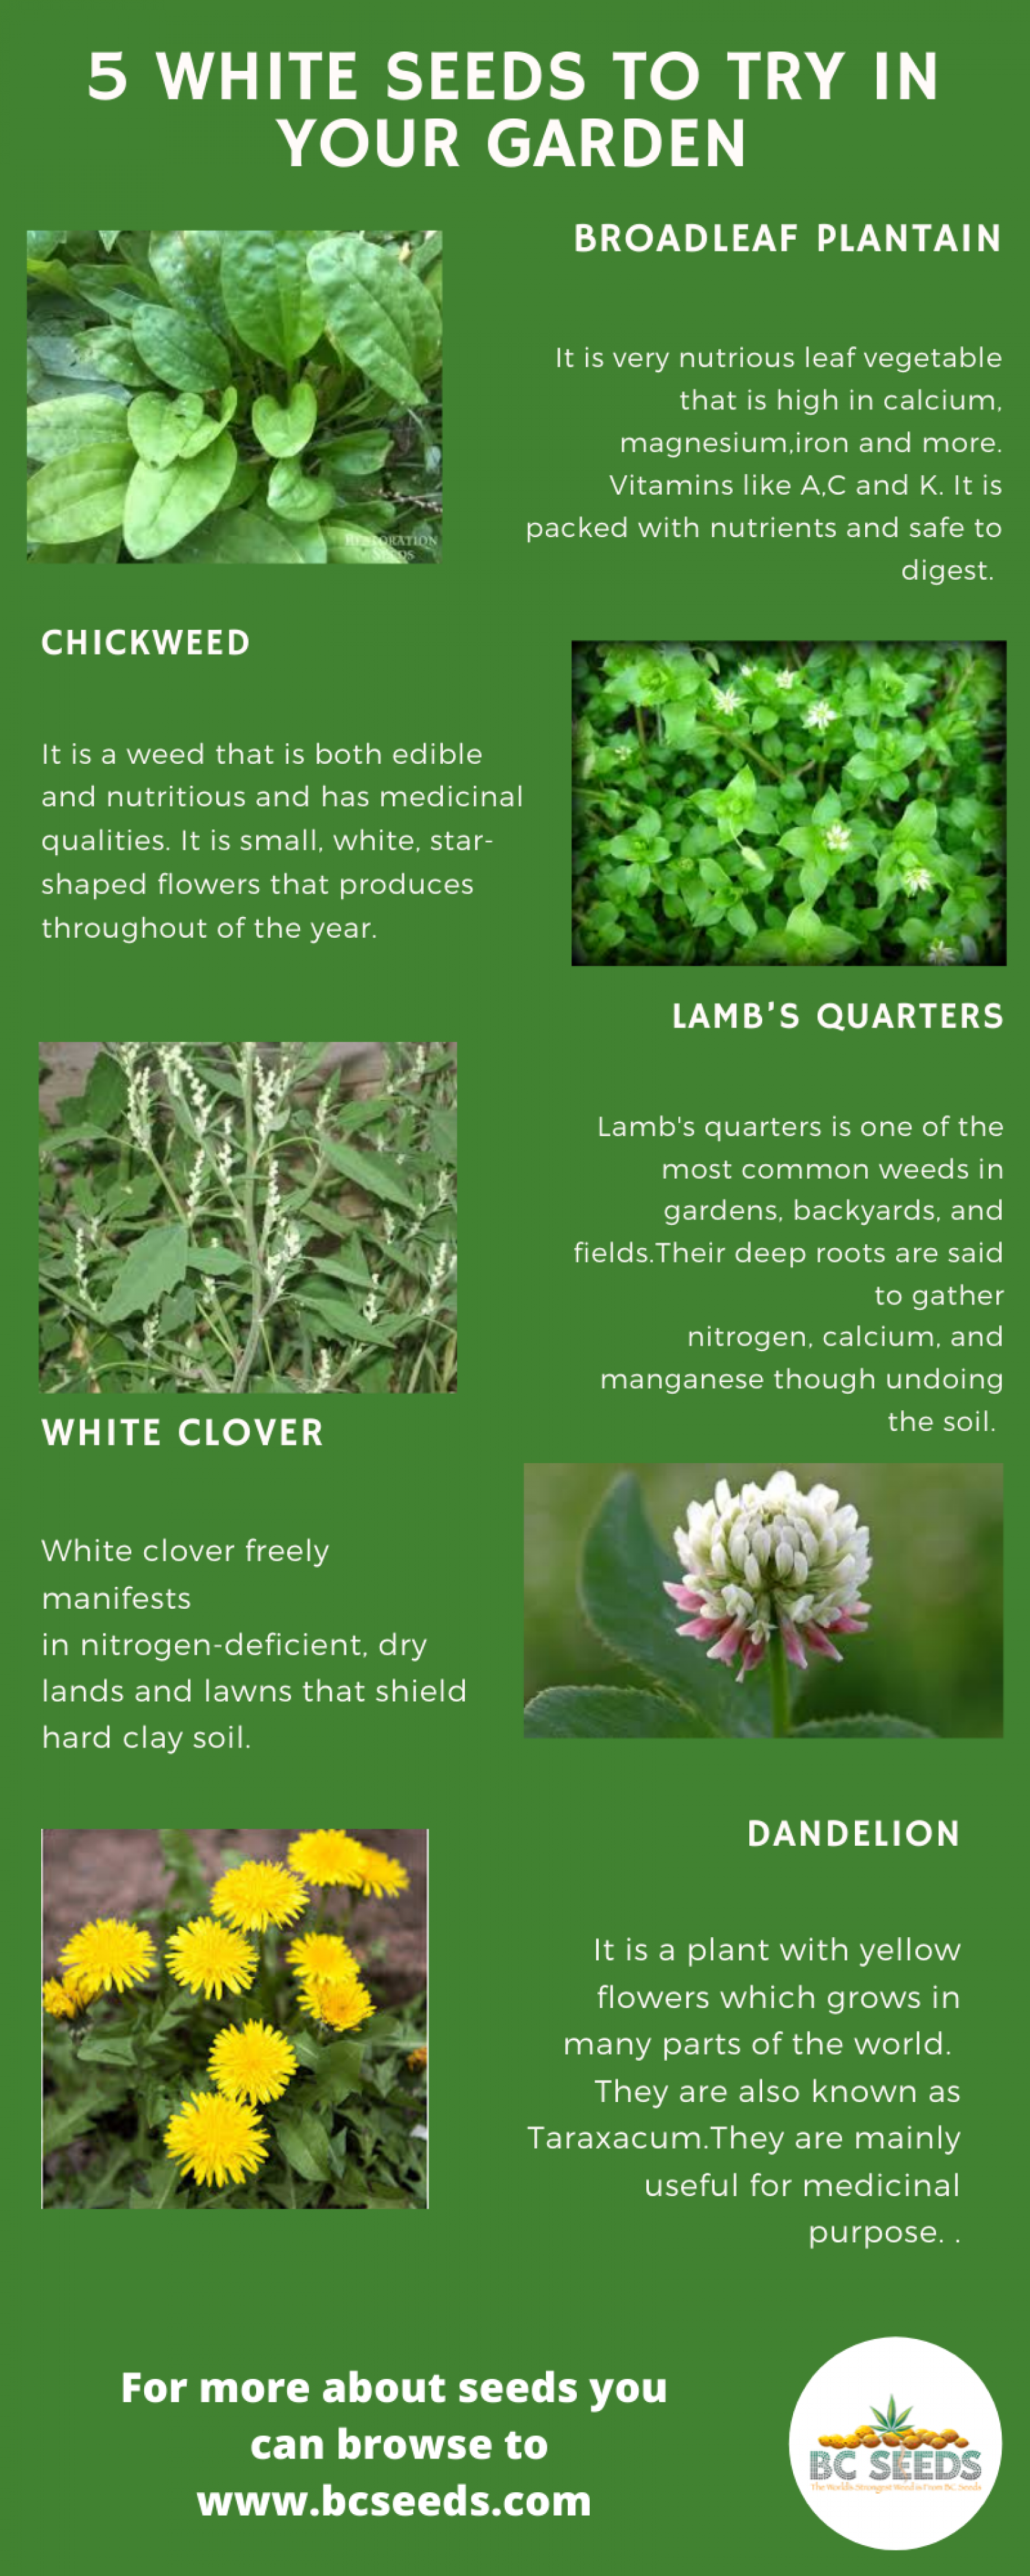 5 White Seeds To Try in Your Garden Infographic